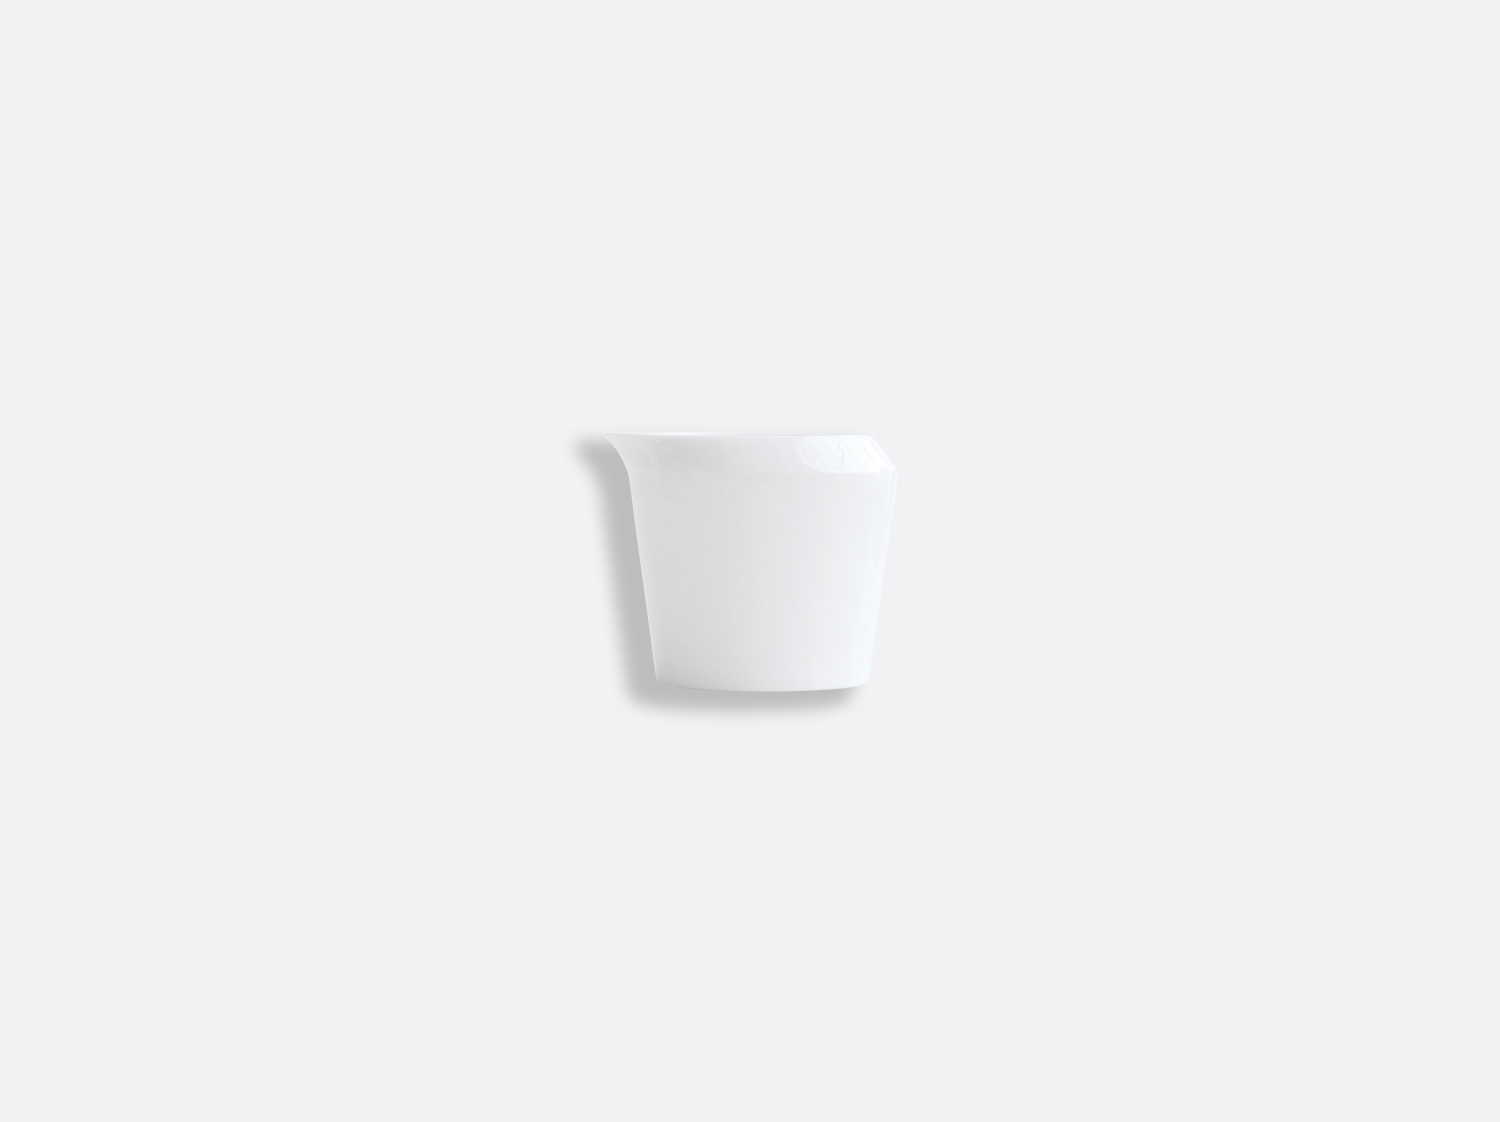 Crémier 8 cl sans anse en porcelaine de la collection ASTRE BLANC Bernardaud